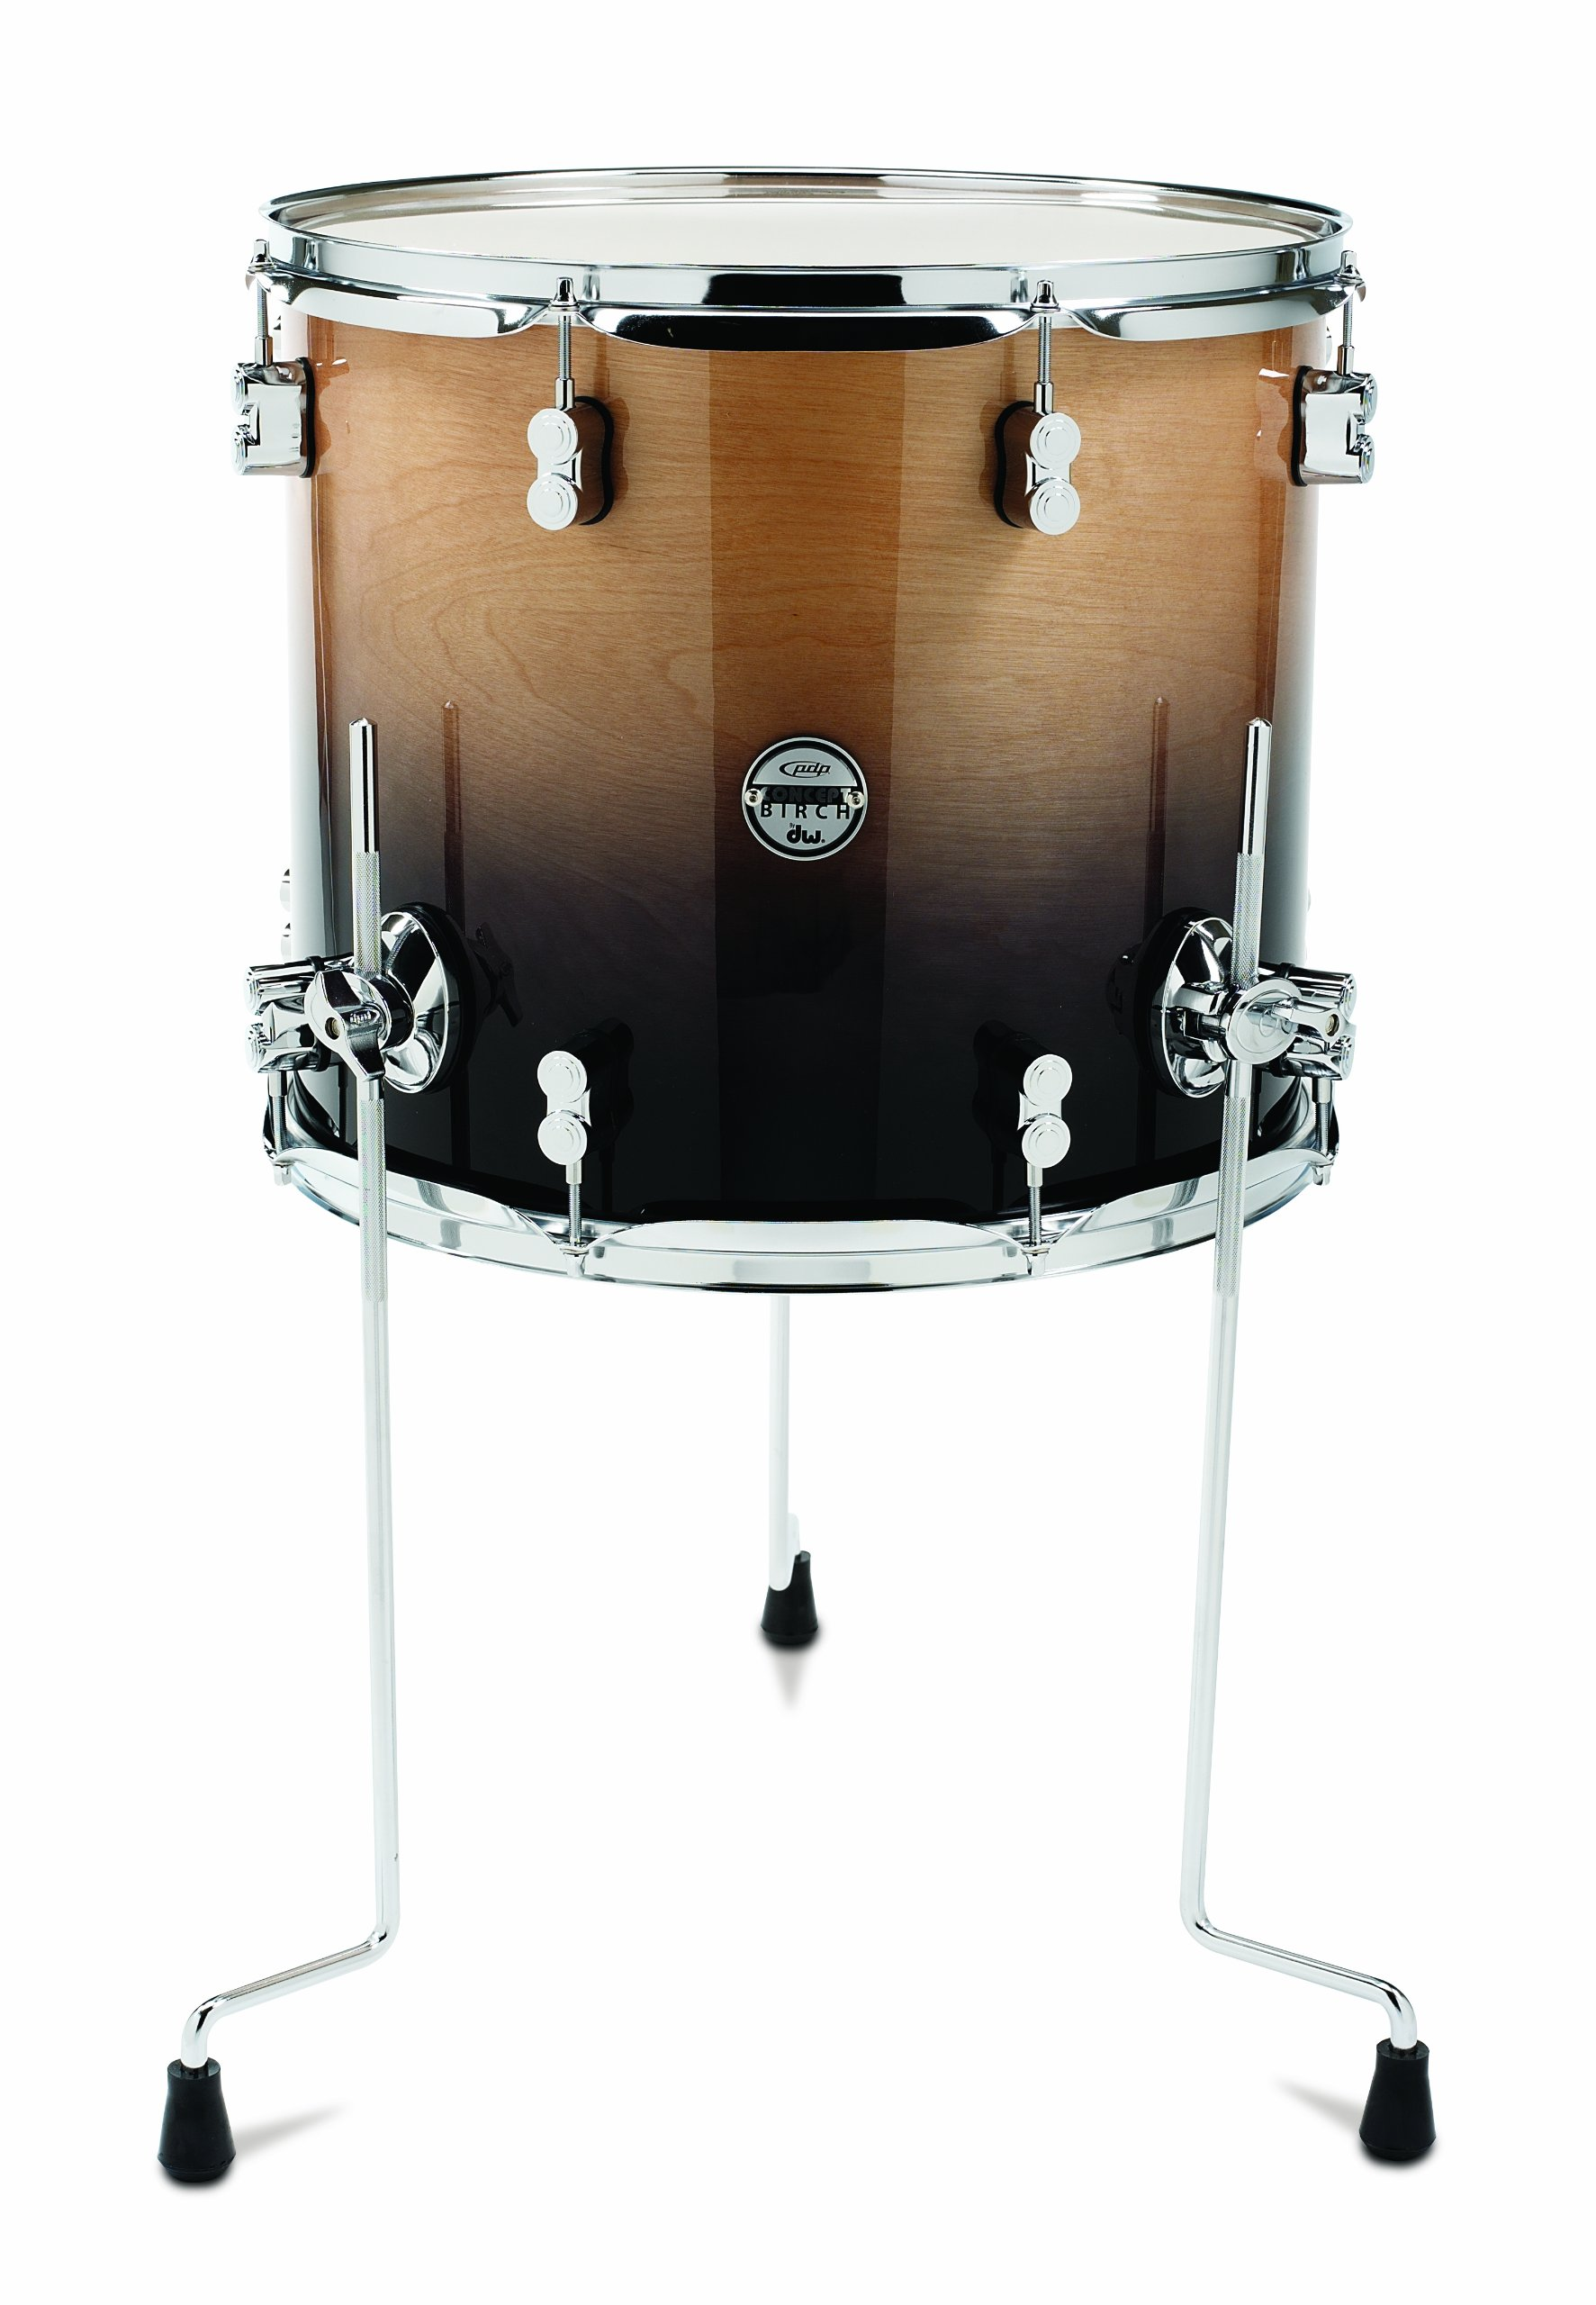 Pacific Drums PDCB1416TTNC 14 x 16 Inches Floor Tom with Chrome Hardware - Natural to Charcoal Fade